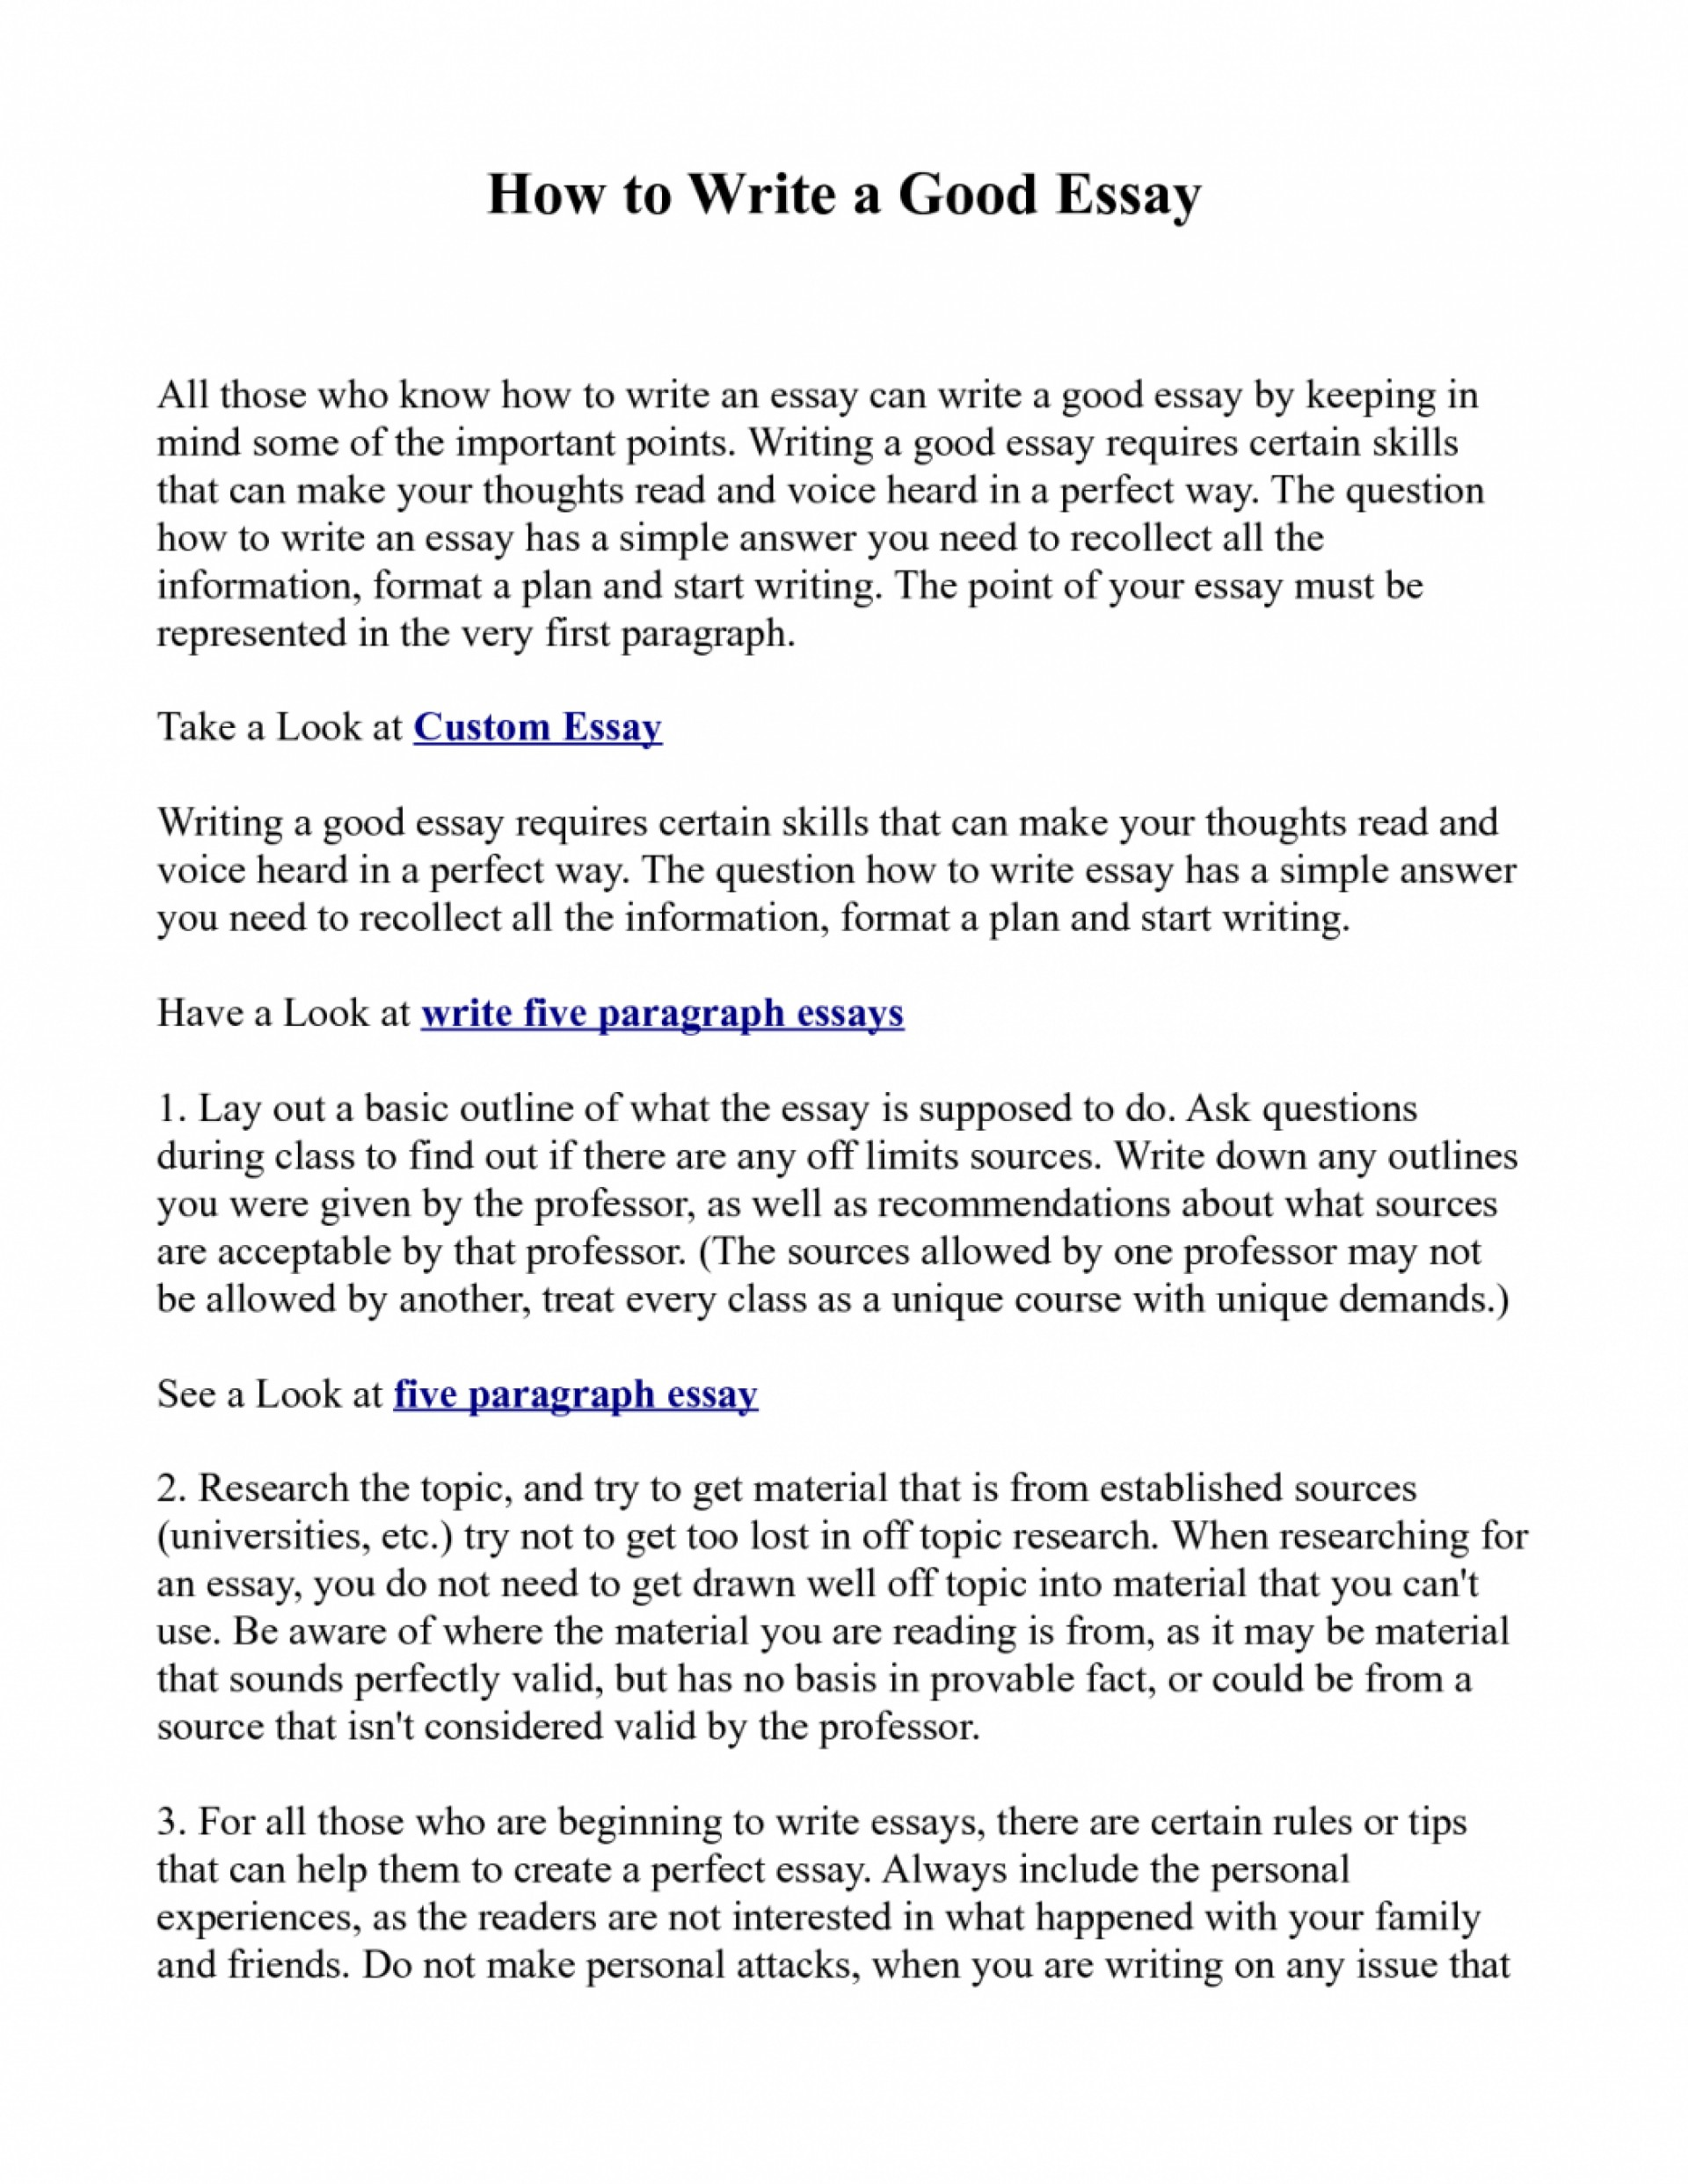 008 Writing Good College Essaysow To Write An Excellent Essay The Start Application Ex1id About Yourself Scholarshipook Examples Prompt With Quote Your Background Failure 1048x1356 Example Singular How Do You Autobiography For Introduction 1920